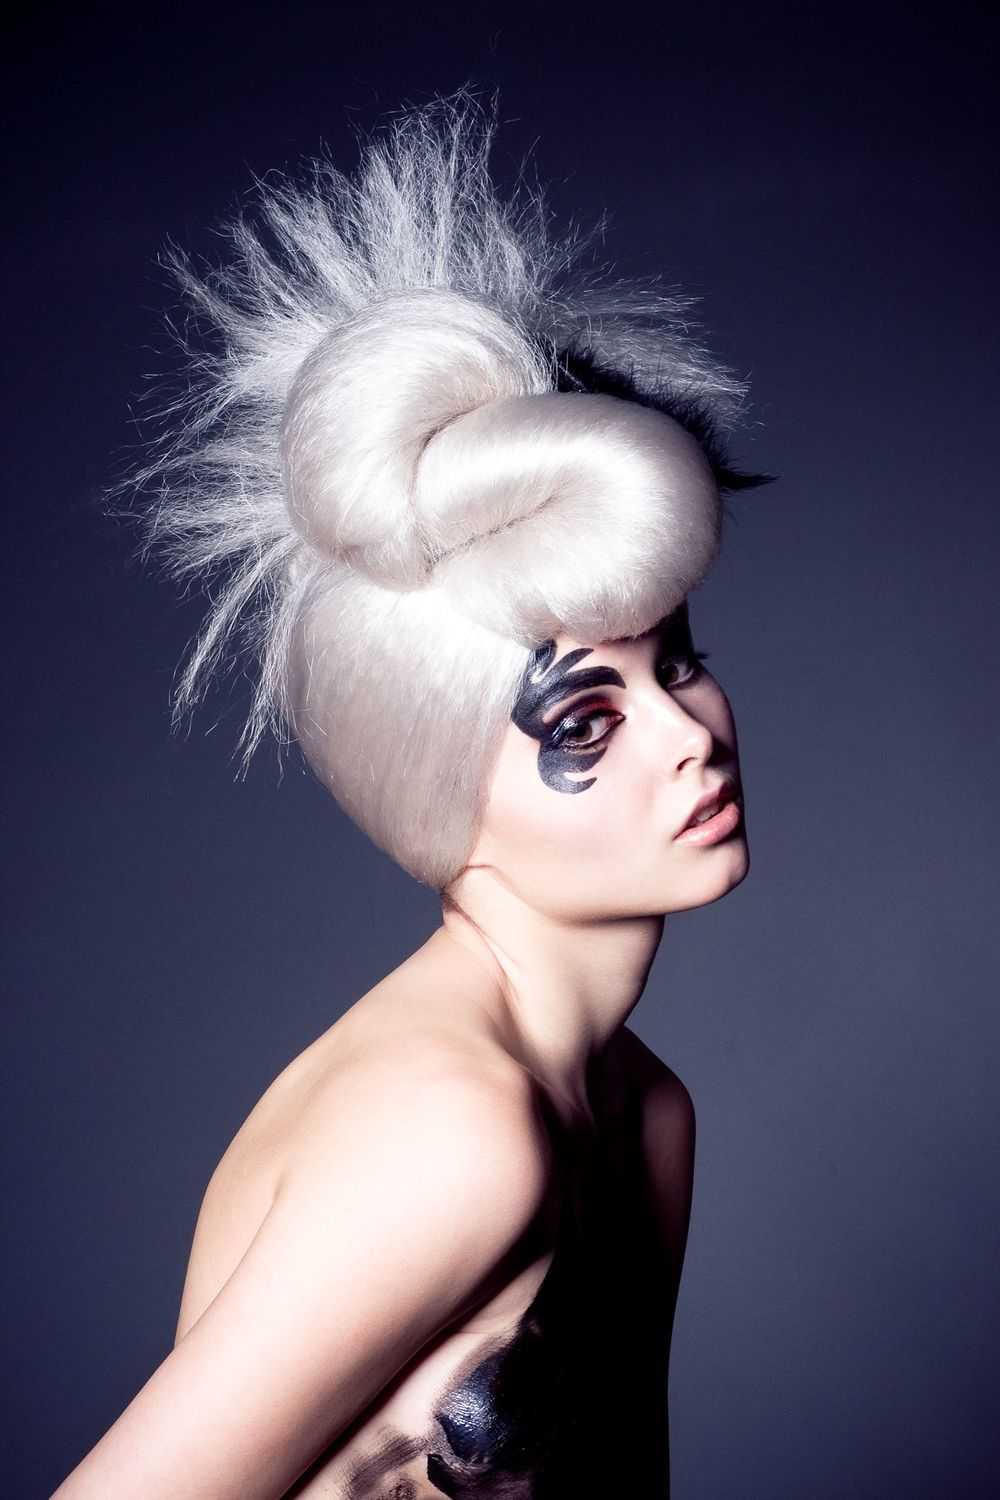 model  Ayla  hair   Marco Arena & Team   make-up  Ira Möller Take a look into the   gallery  !